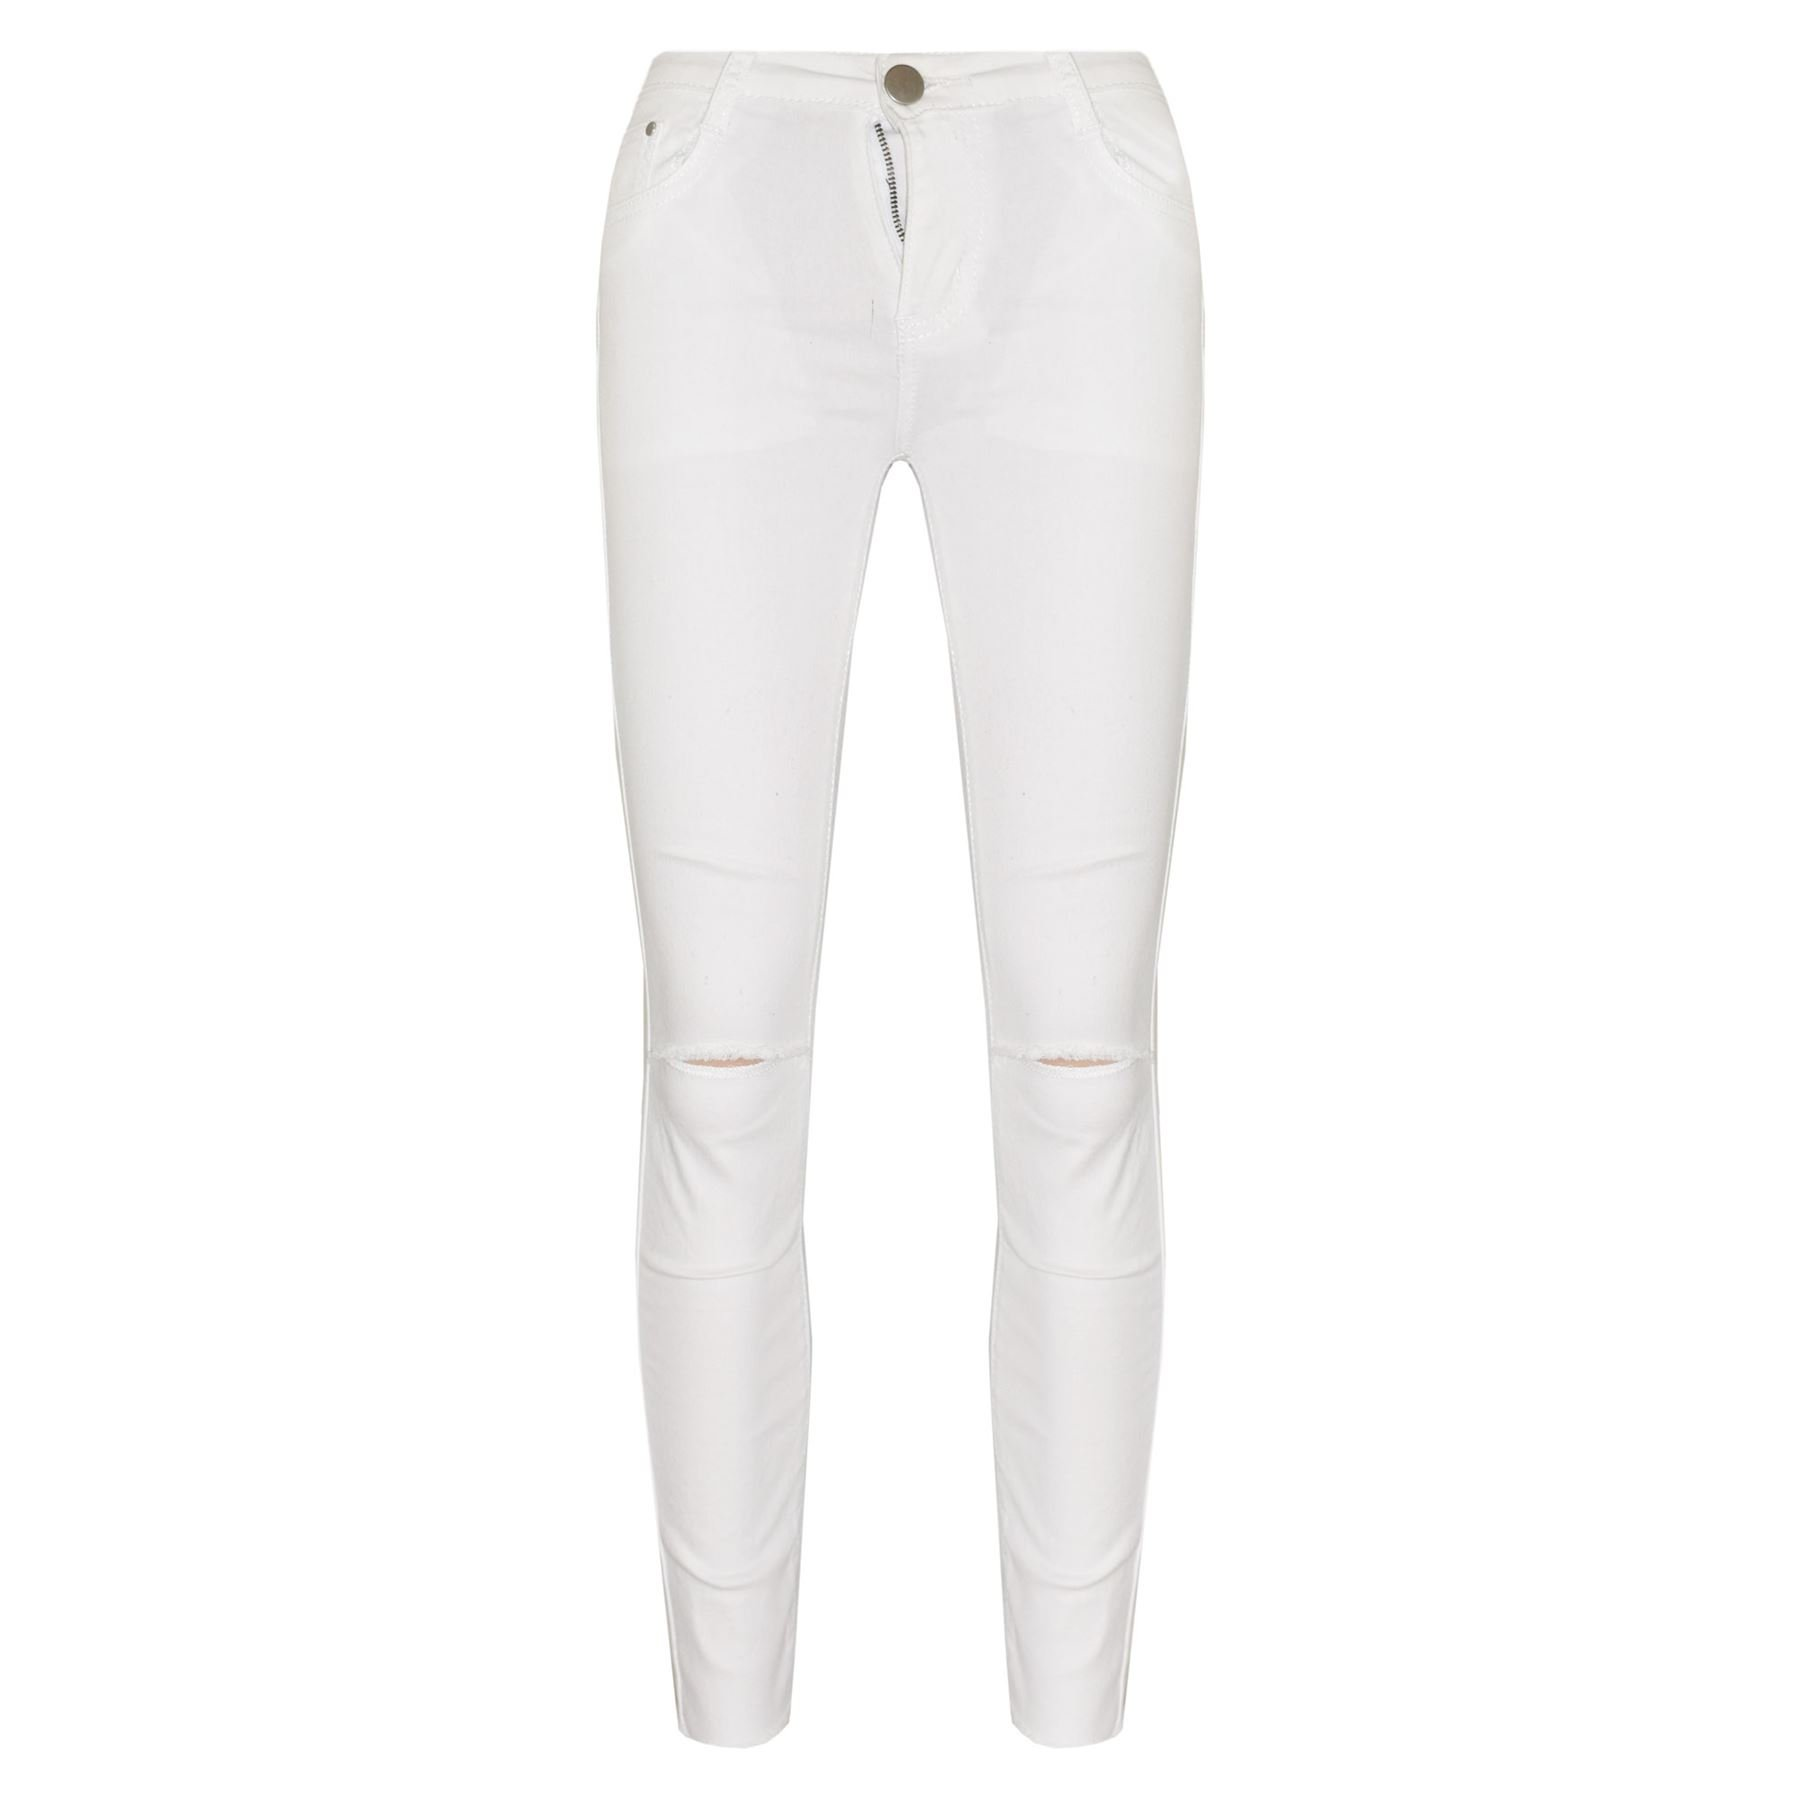 A2Z 4 Kids® Girls Stretchy Jeans Kids White Denim Ripped Pants Frayed Trousers Age 5-13 Year